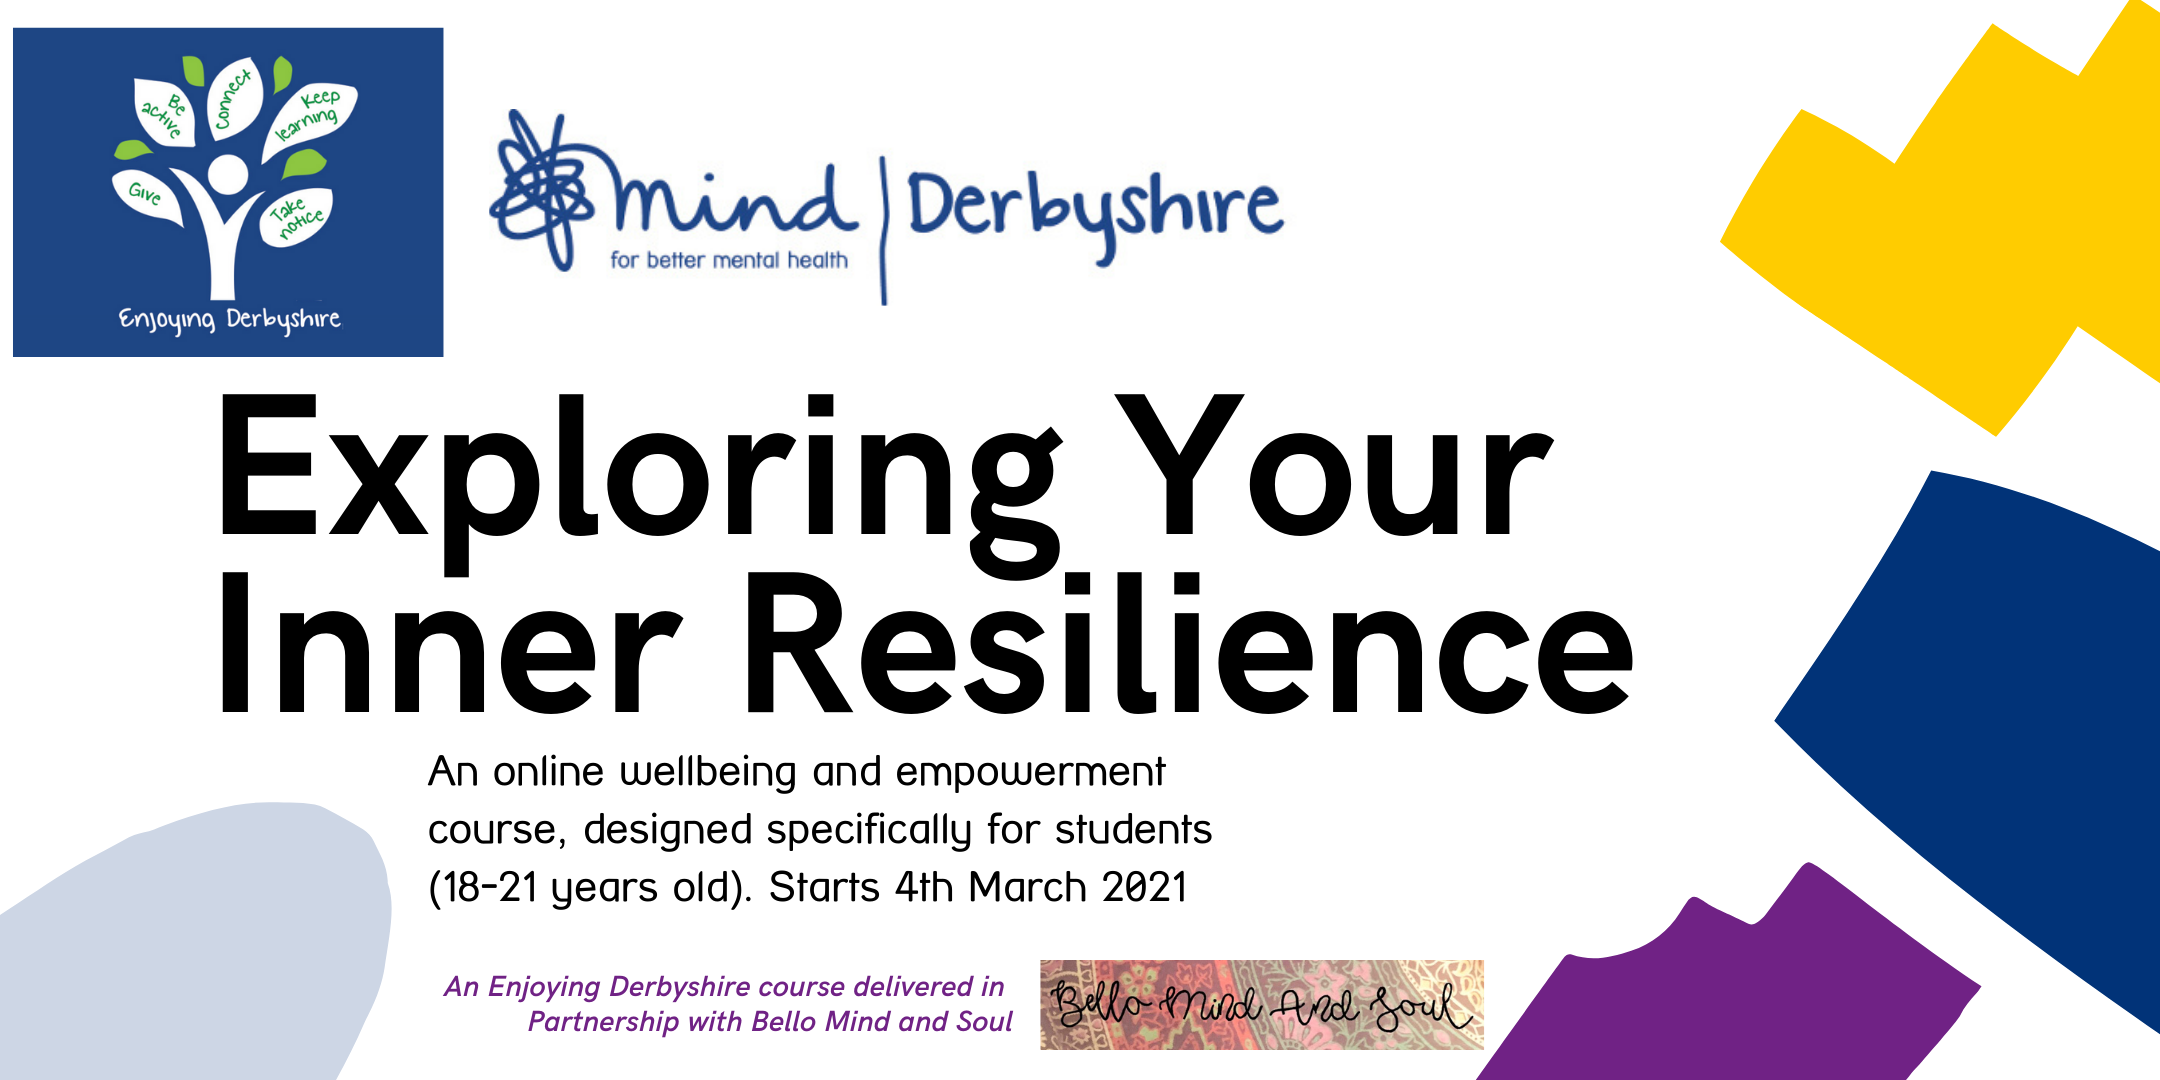 Exploring Your Inner Resilience